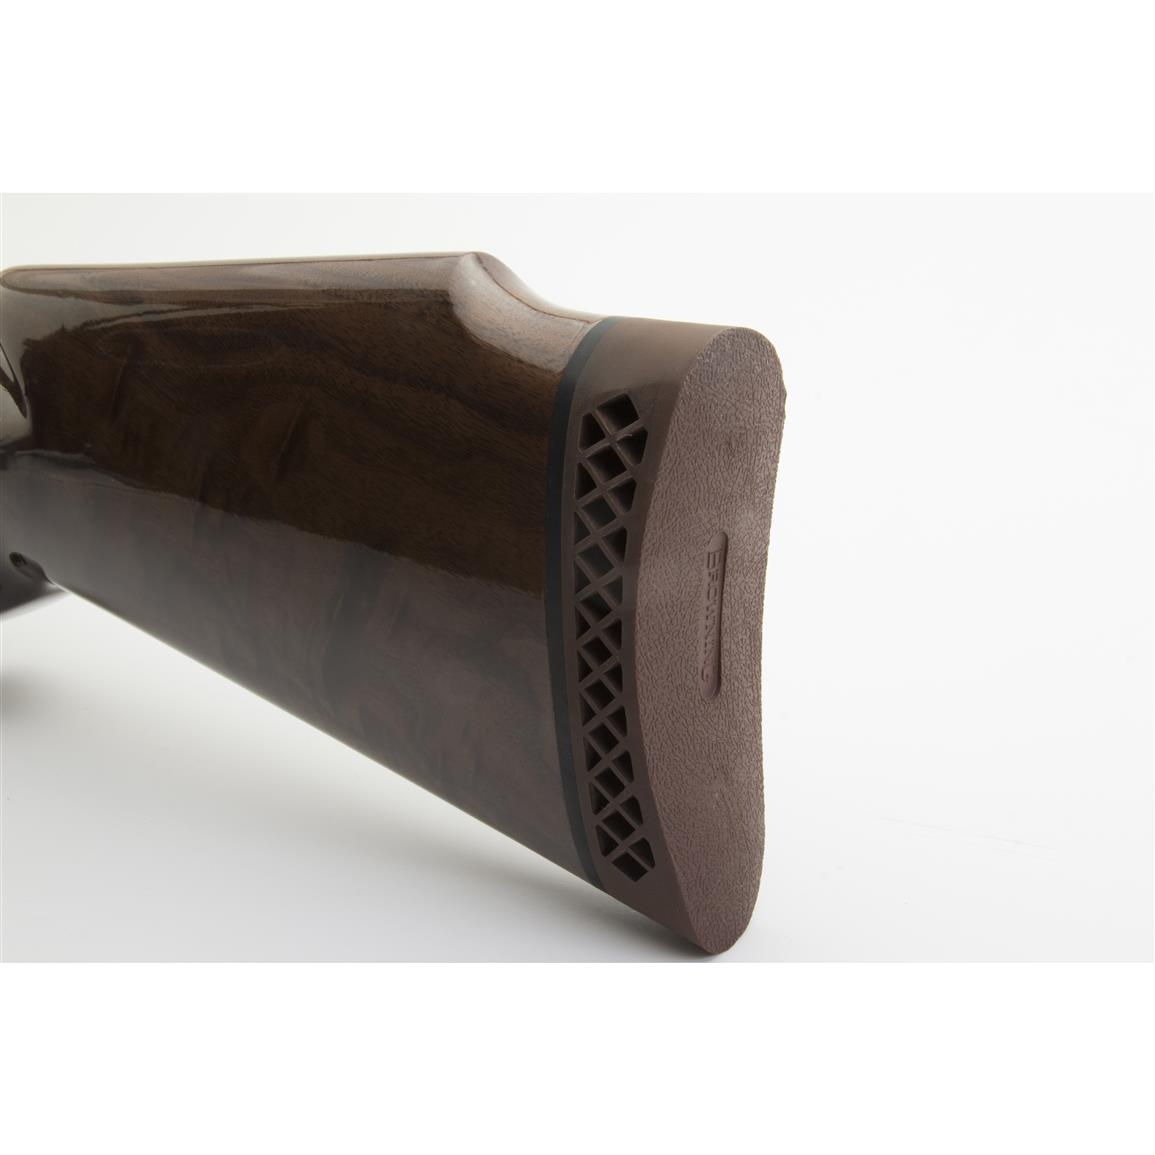 Interflex recoil pad absorbs and deflects recoil away from the shooter's cheek, allowing you to shoot comfortable for longer periods